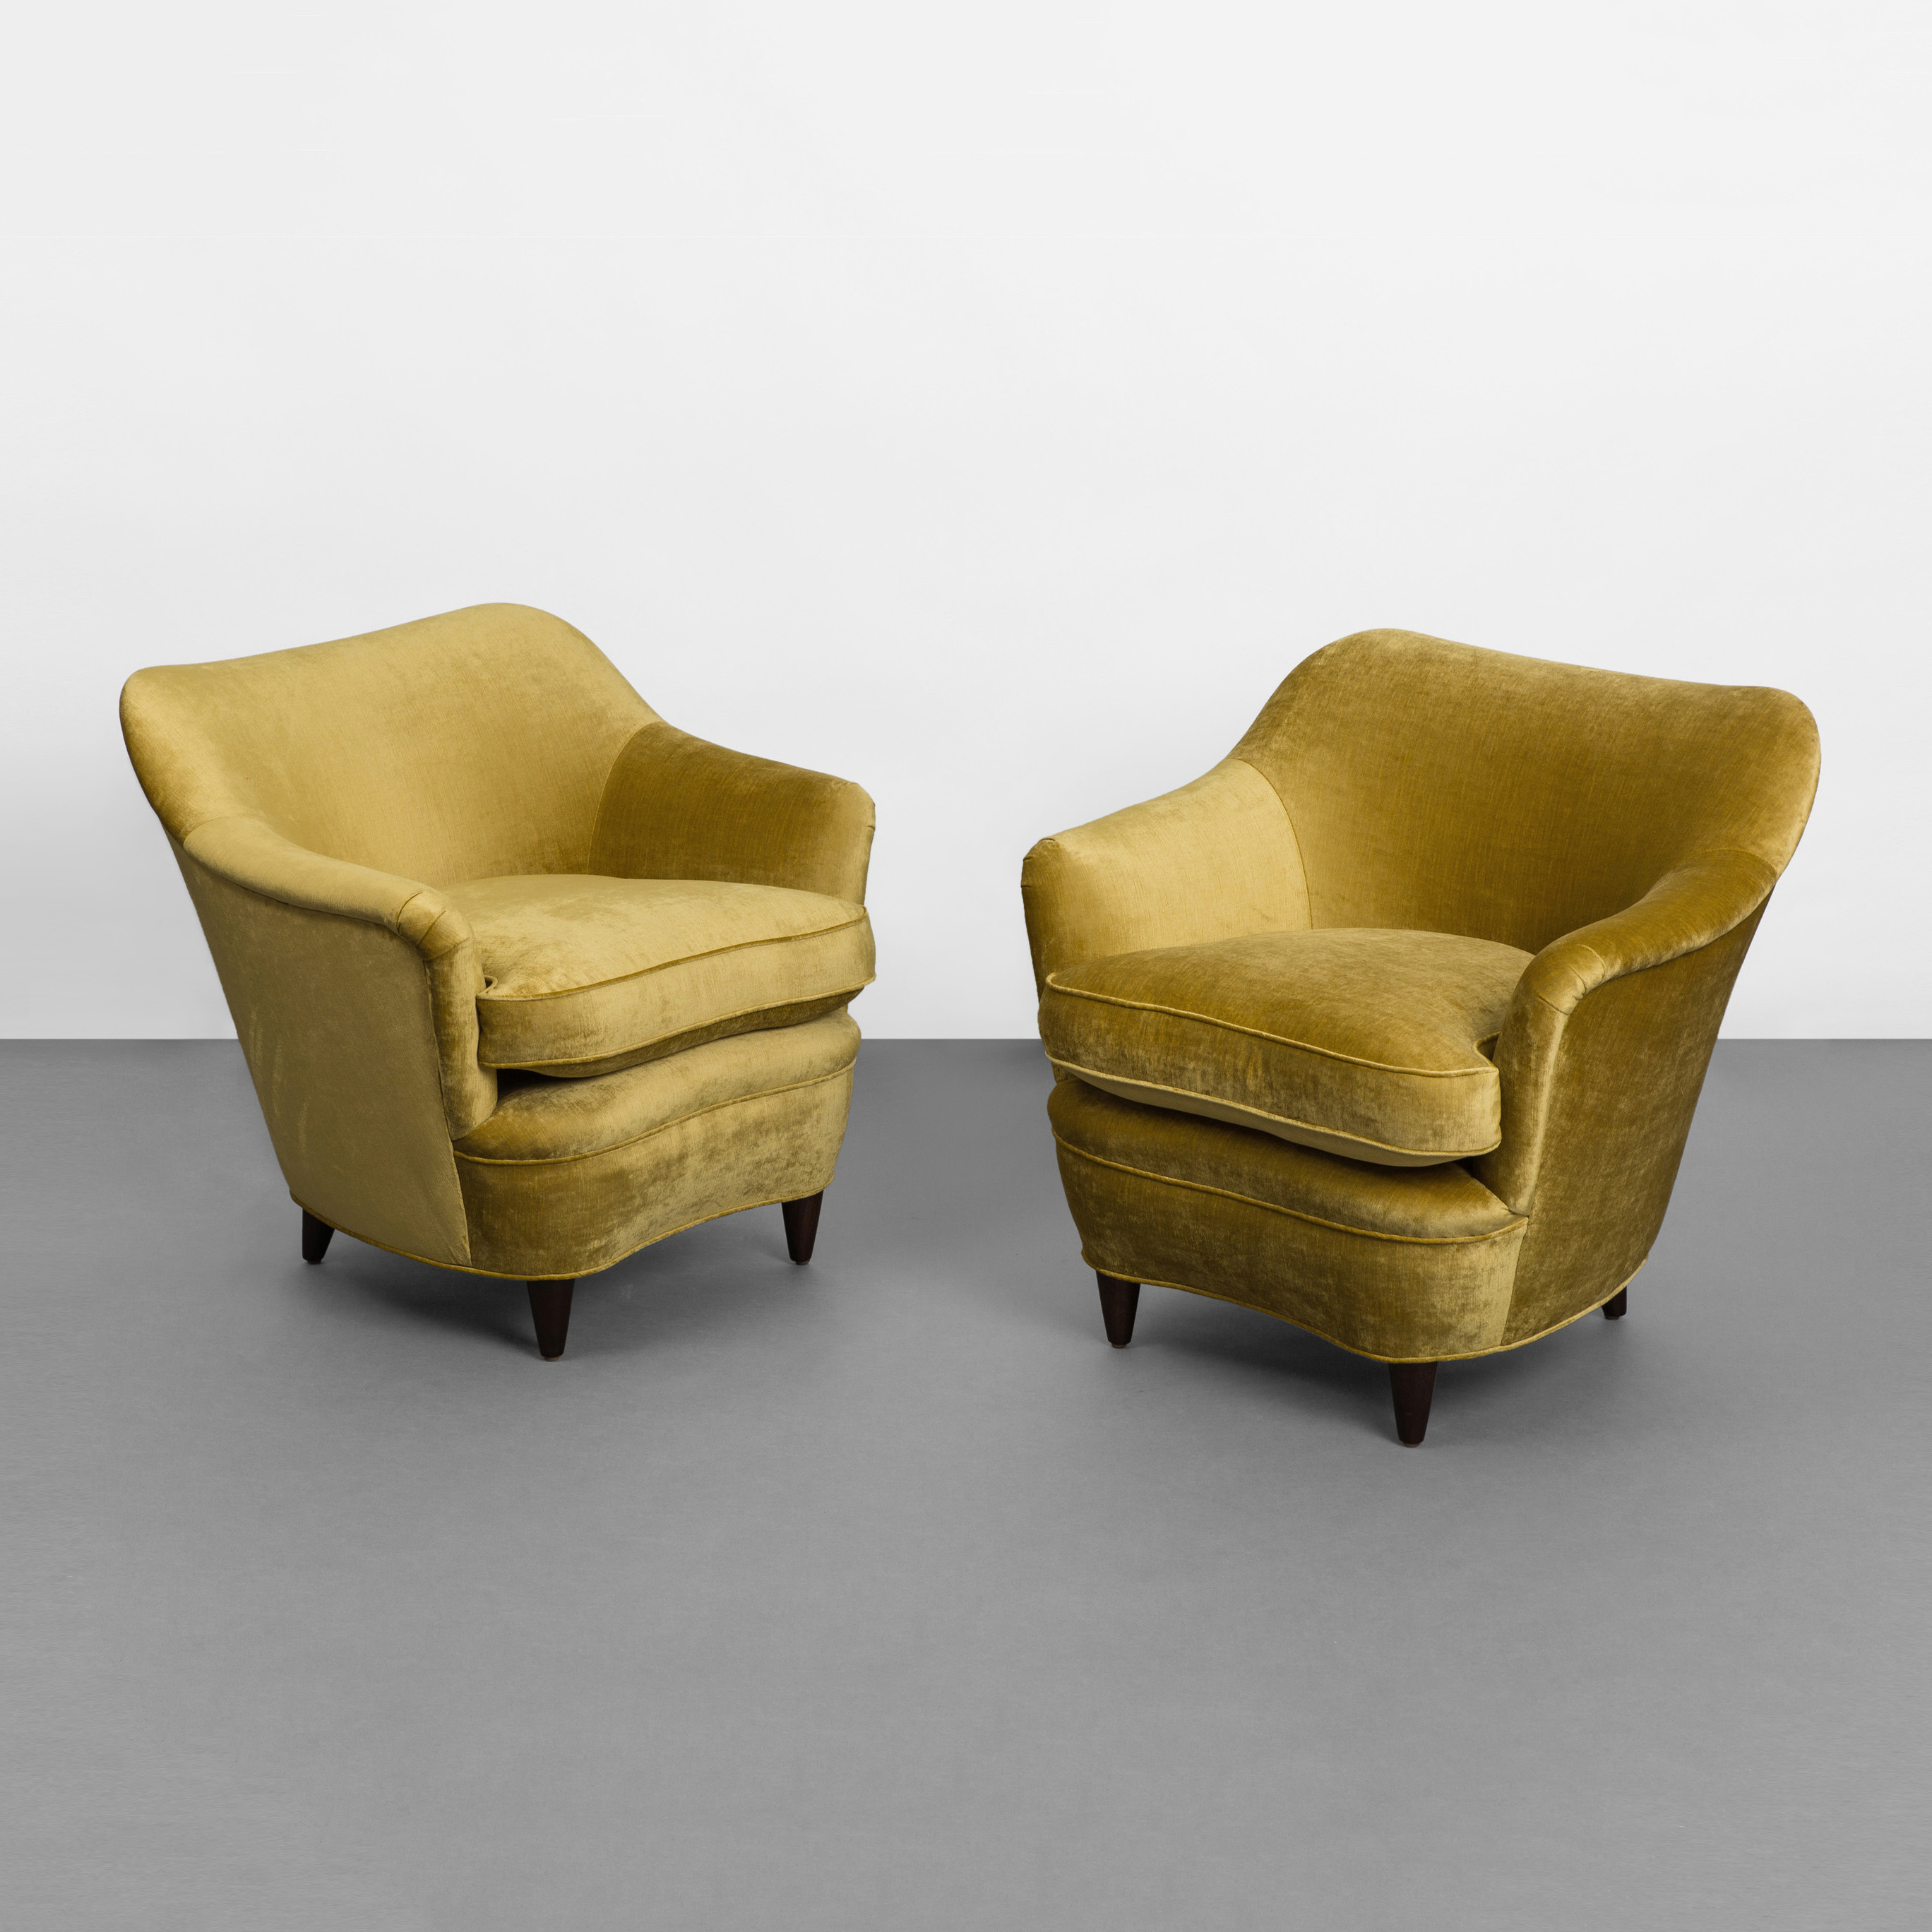 Pair of Armchairs by Gio Ponti for Casa e Giardino | soyun k.